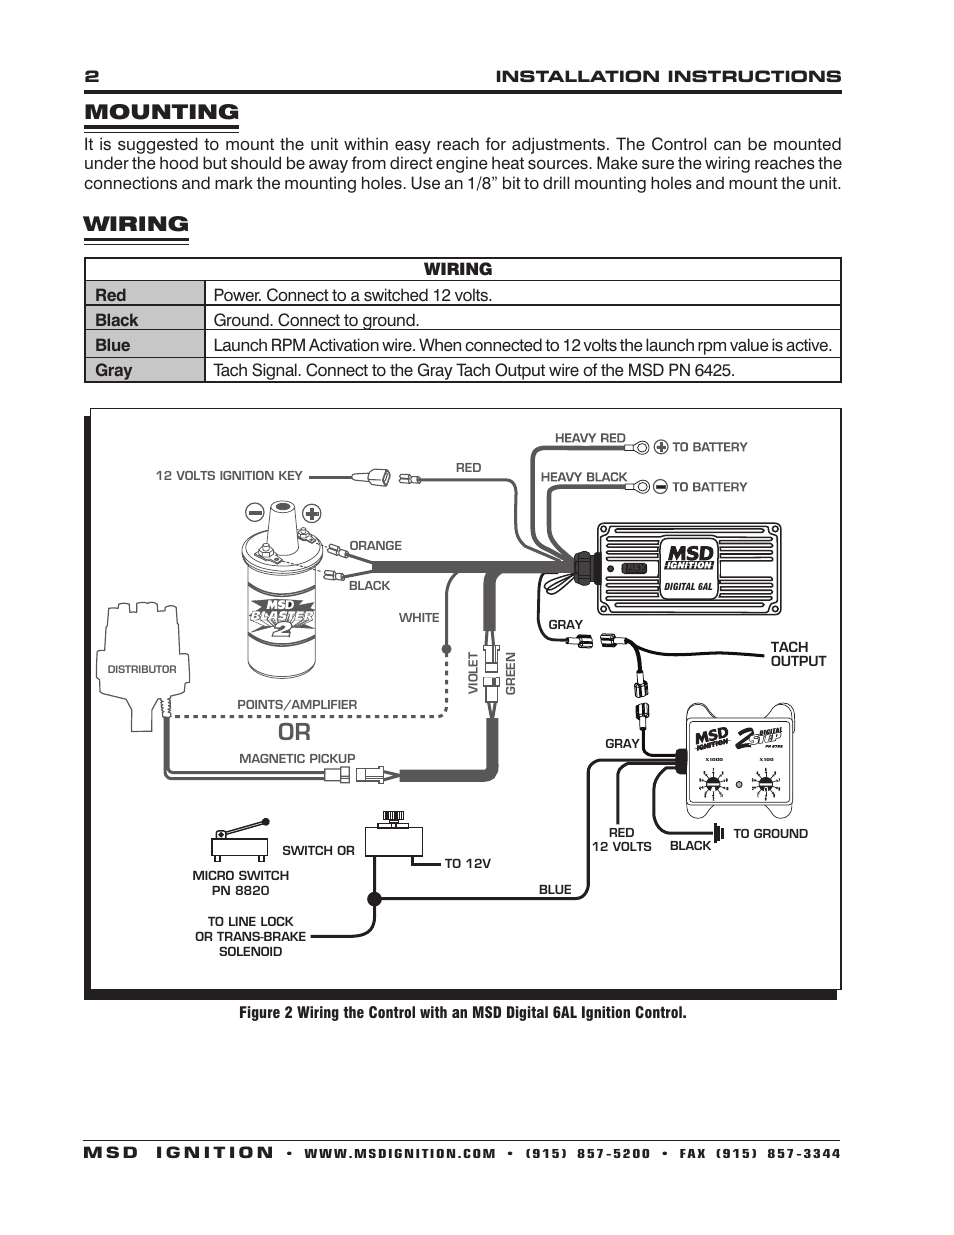 B category vr8304 catpath 1 2 3 1 7 rank 0 v1 sort 1 product additionally Honeywell S8610u3009 Wiring Diagram moreover Honeywell R845a1030 Wiring Diagram also Ase Ignition System Diagrams Wiring Diagrams together with Tribune highlights. on intermittent pilot ignition system diagram